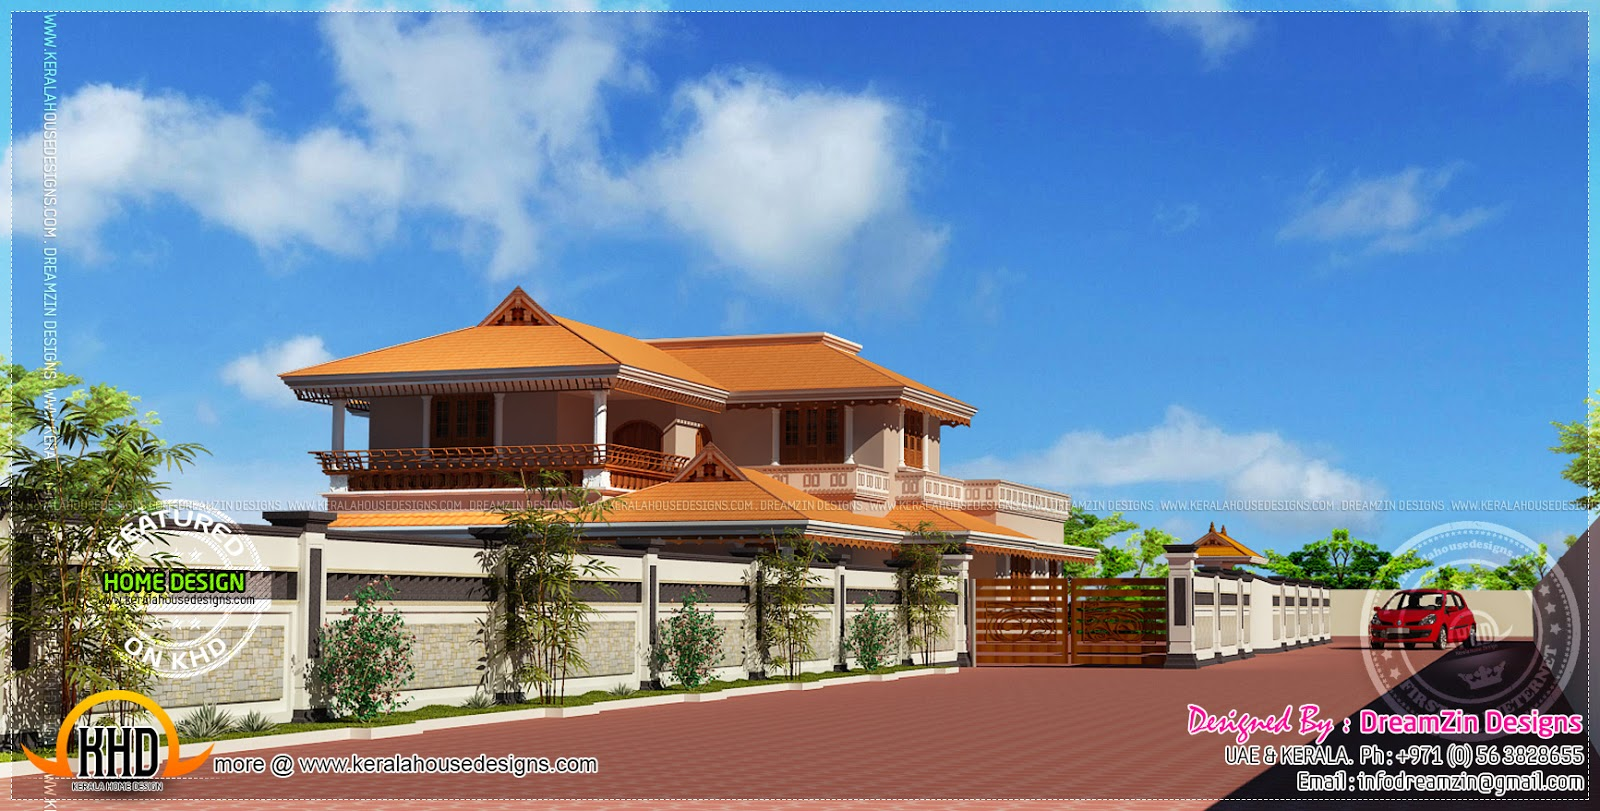 House With Compound Wall Design Kerala Home Design